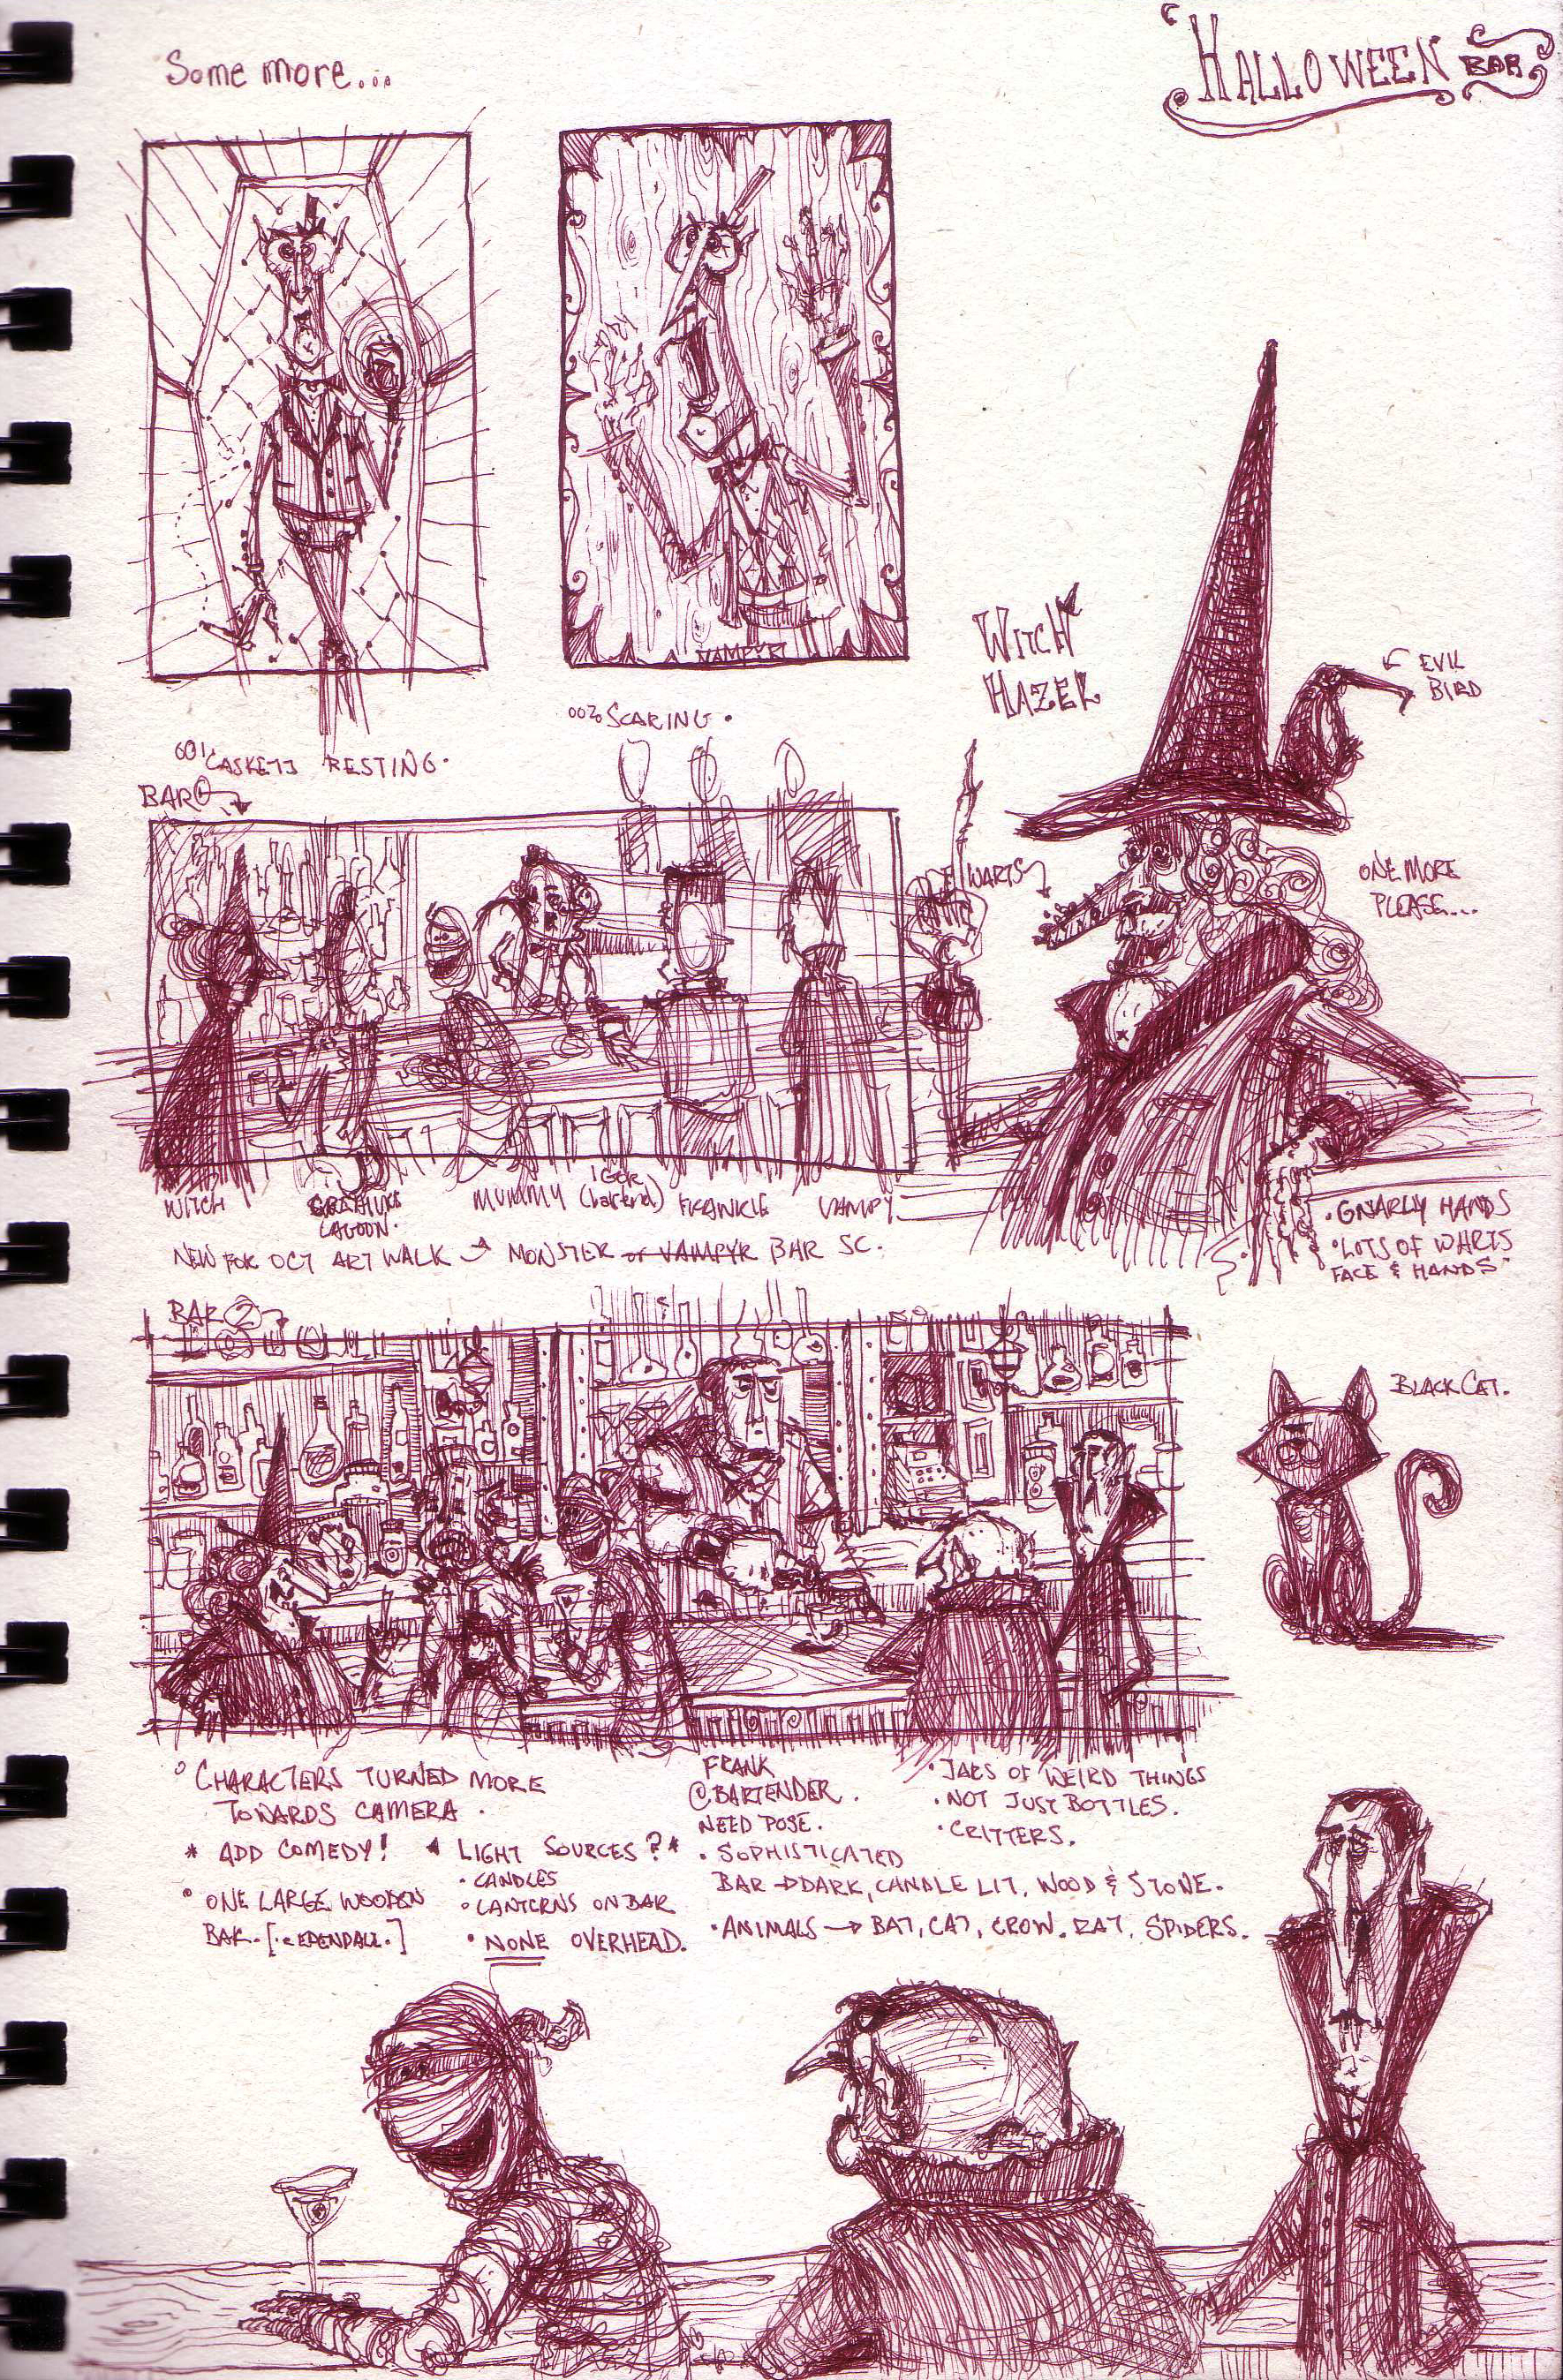 Sketches and notes for an October painting.